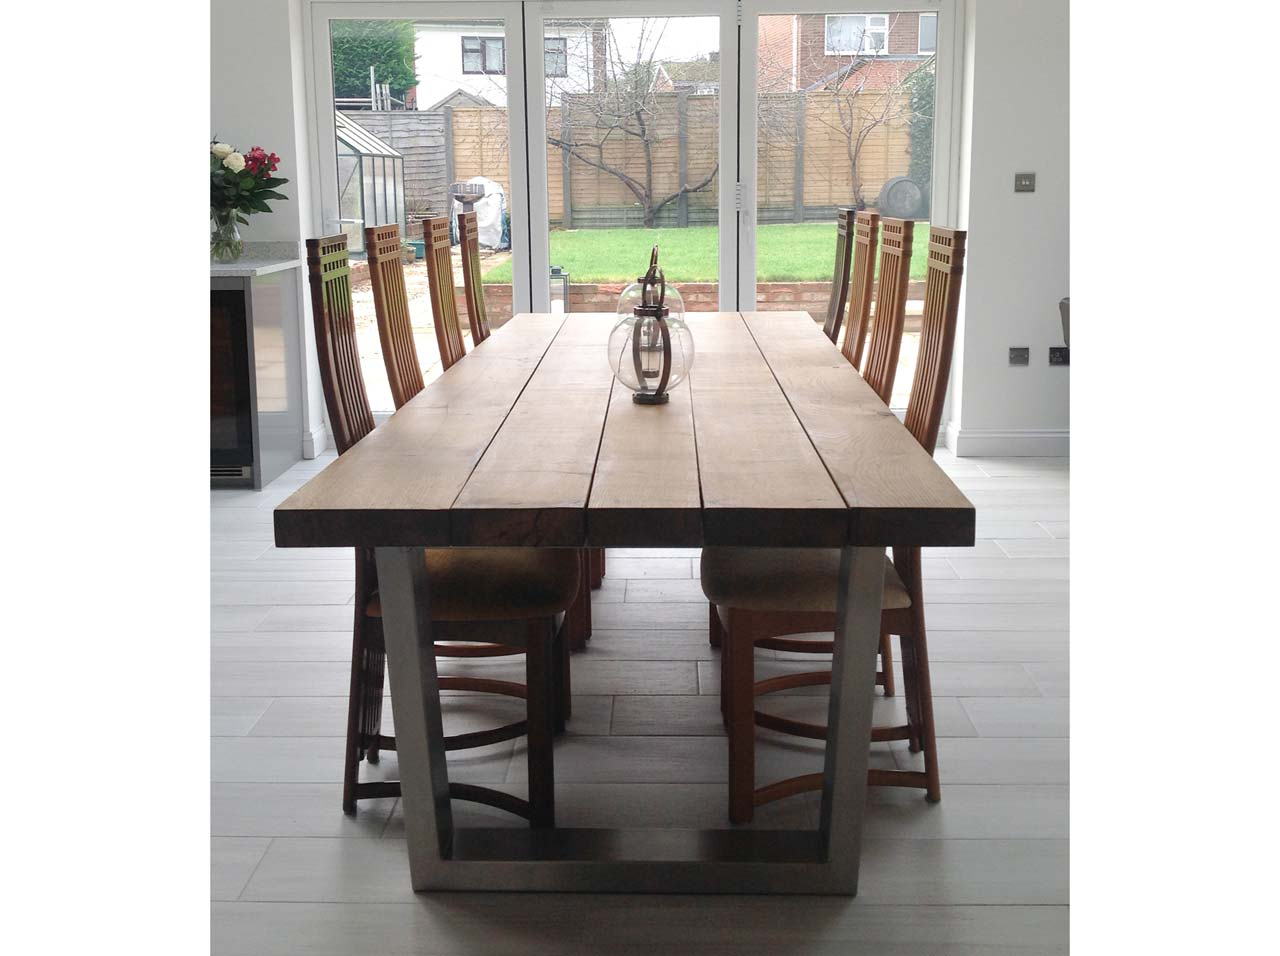 Large-dining-table-project-393-abacus-tables-image-1